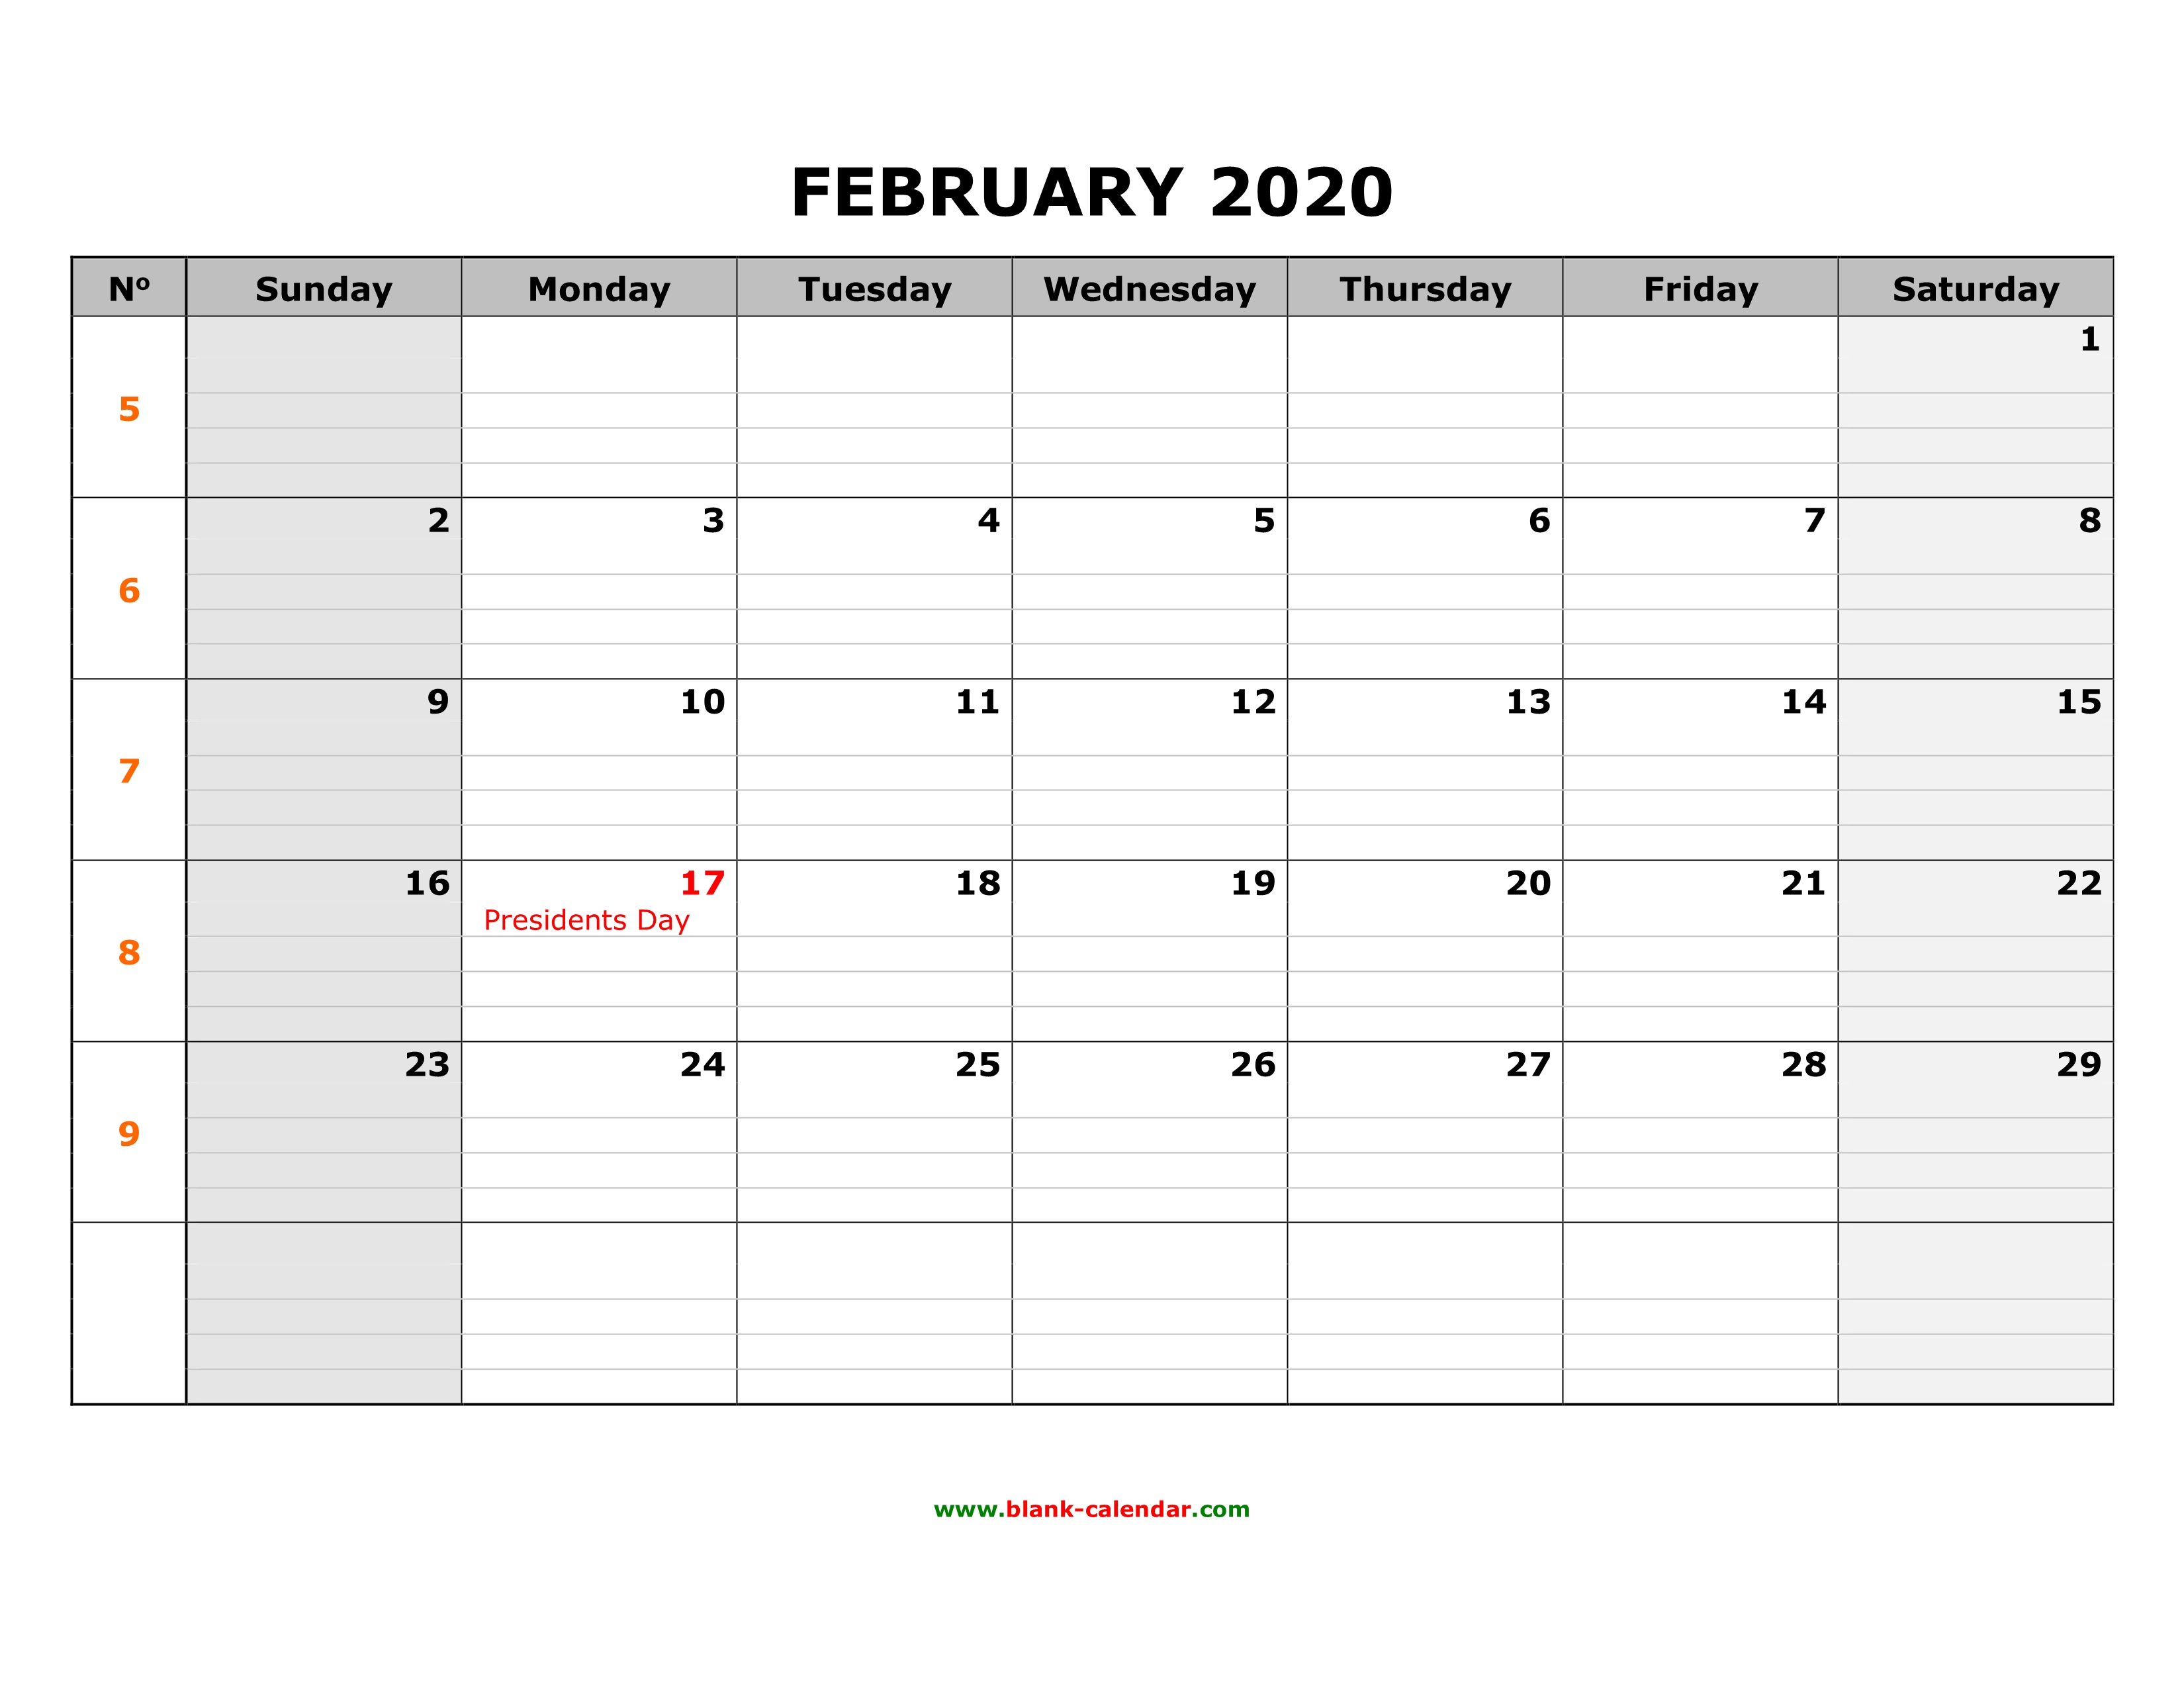 February Calendar 2020 Grid Free Download Printable February 2020 Calendar, large box grid